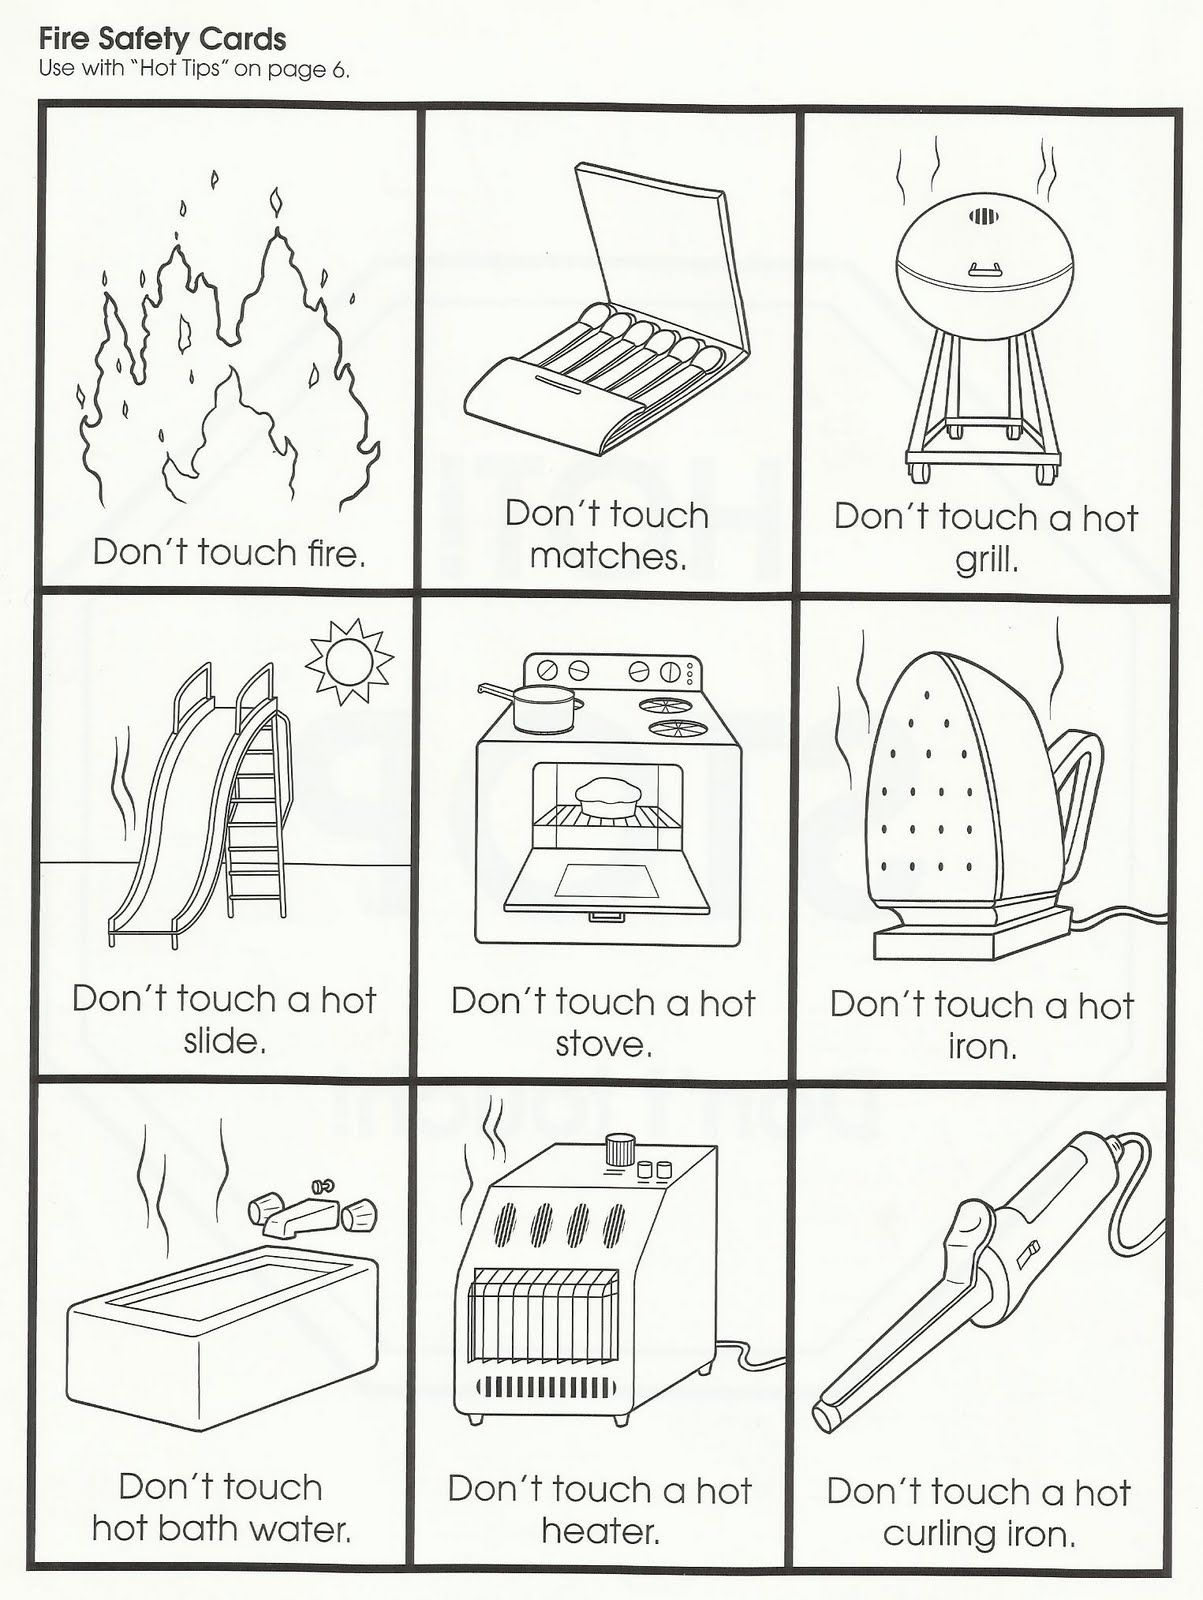 Worksheets Free Fire Safety Worksheets squish preschool ideas fire safety community helpers worksheets for kindergarten